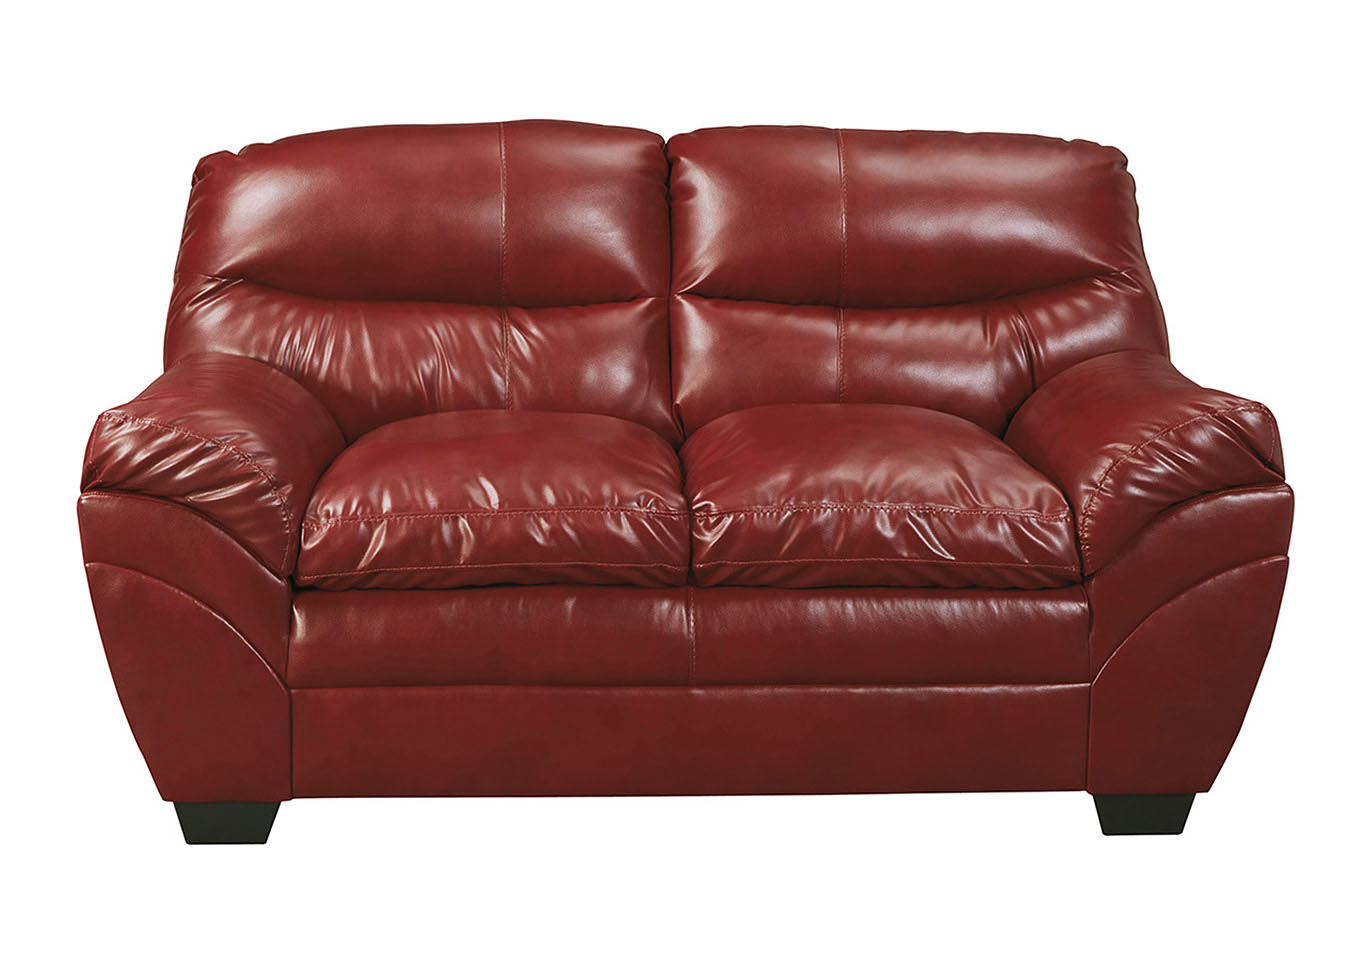 Roses Flooring And Furniture Tassler Durablend Crimson Loveseat